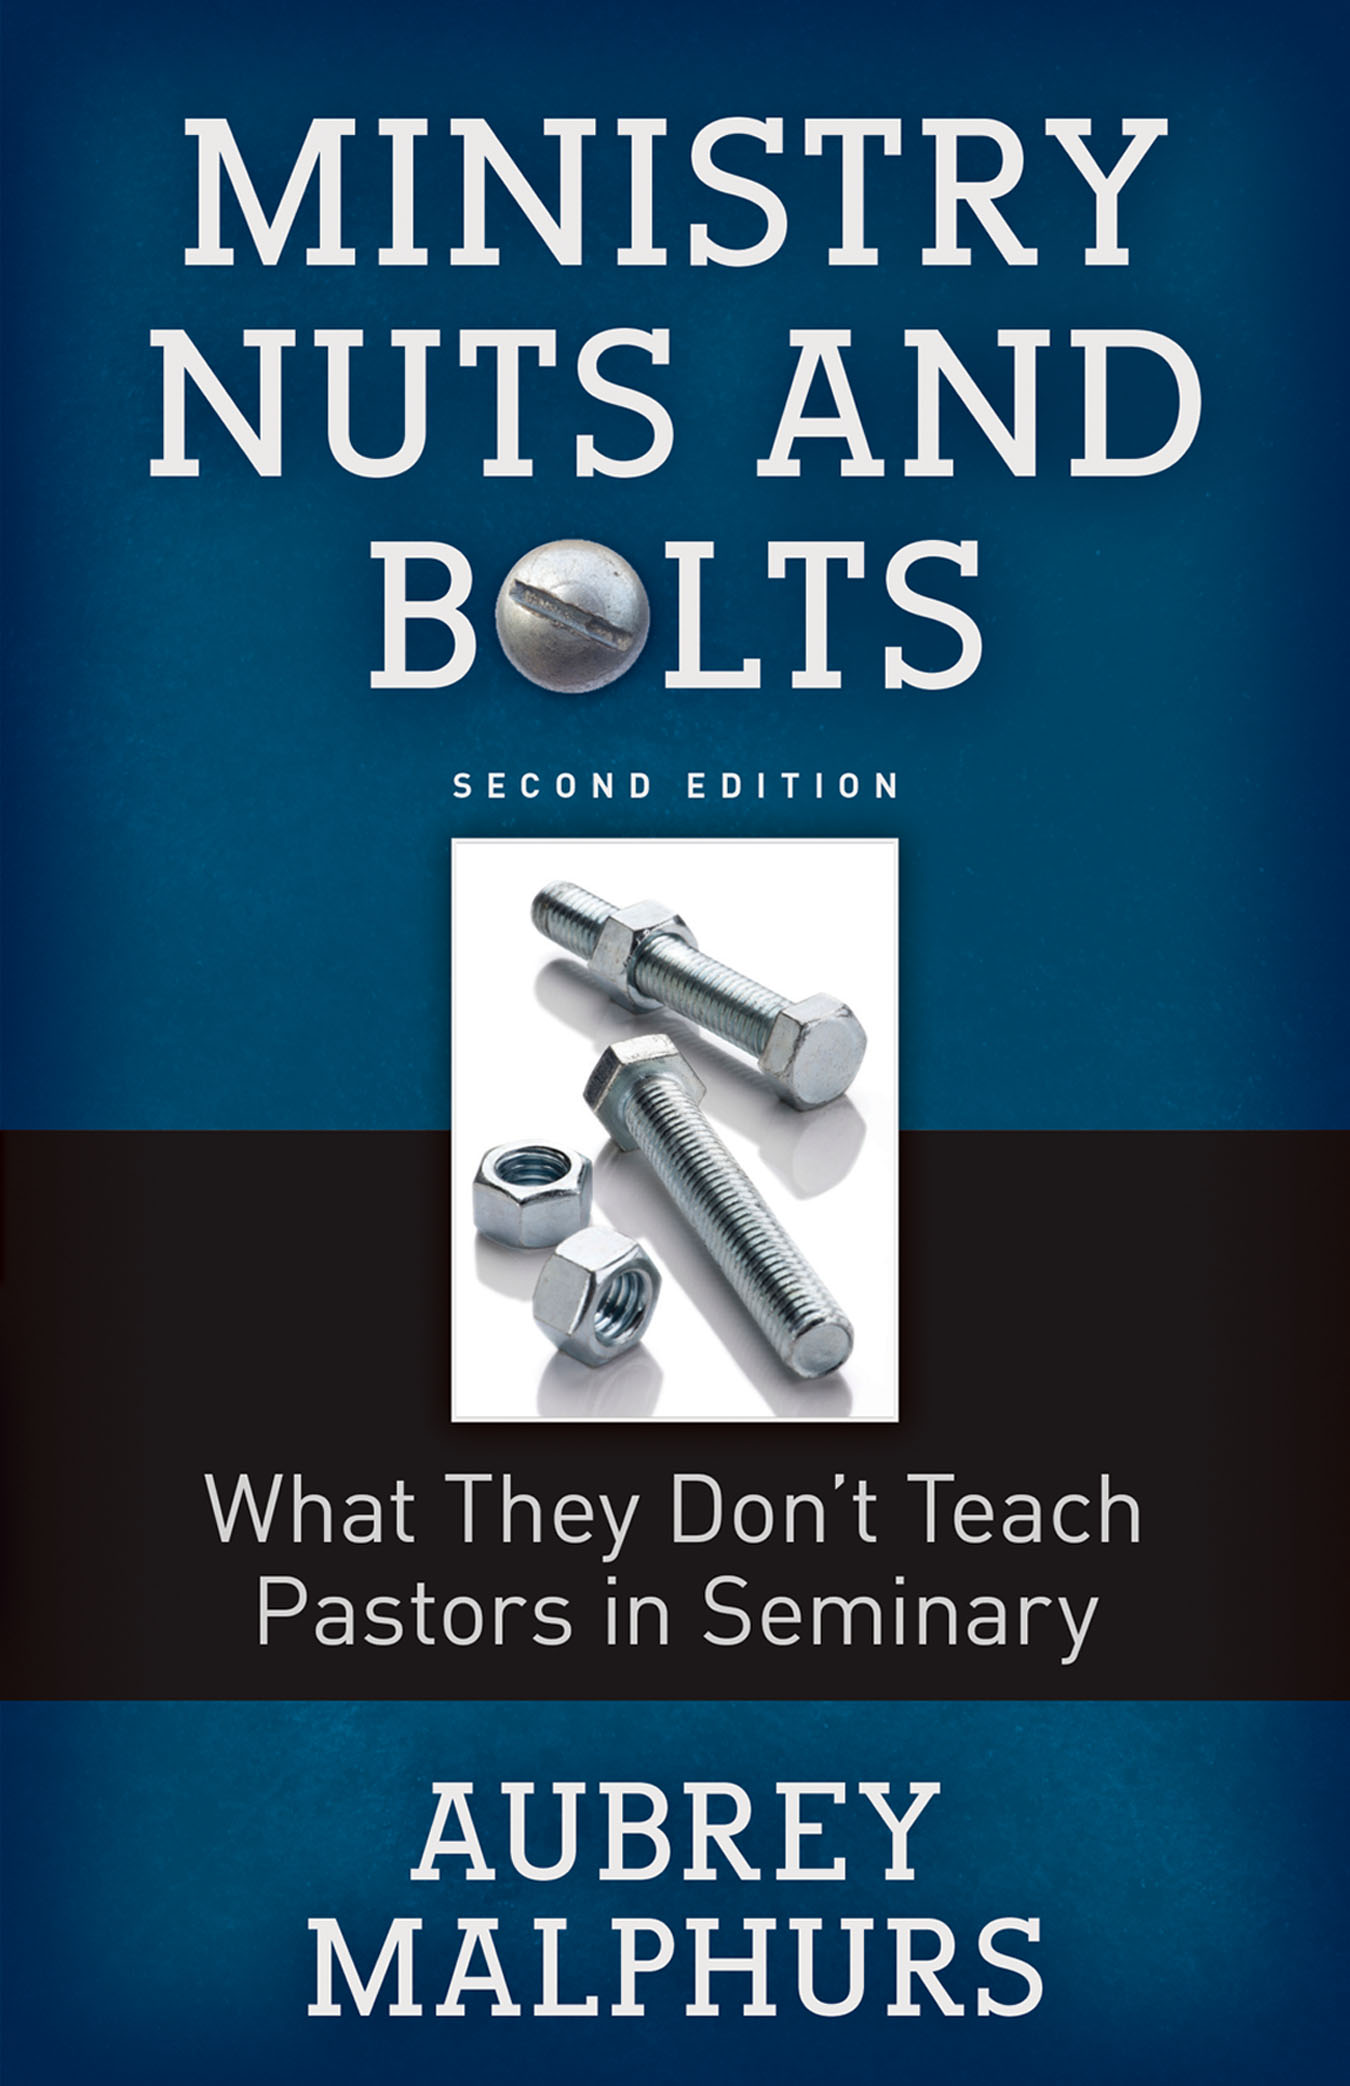 Ministry Nuts and Bolts, Second Edition